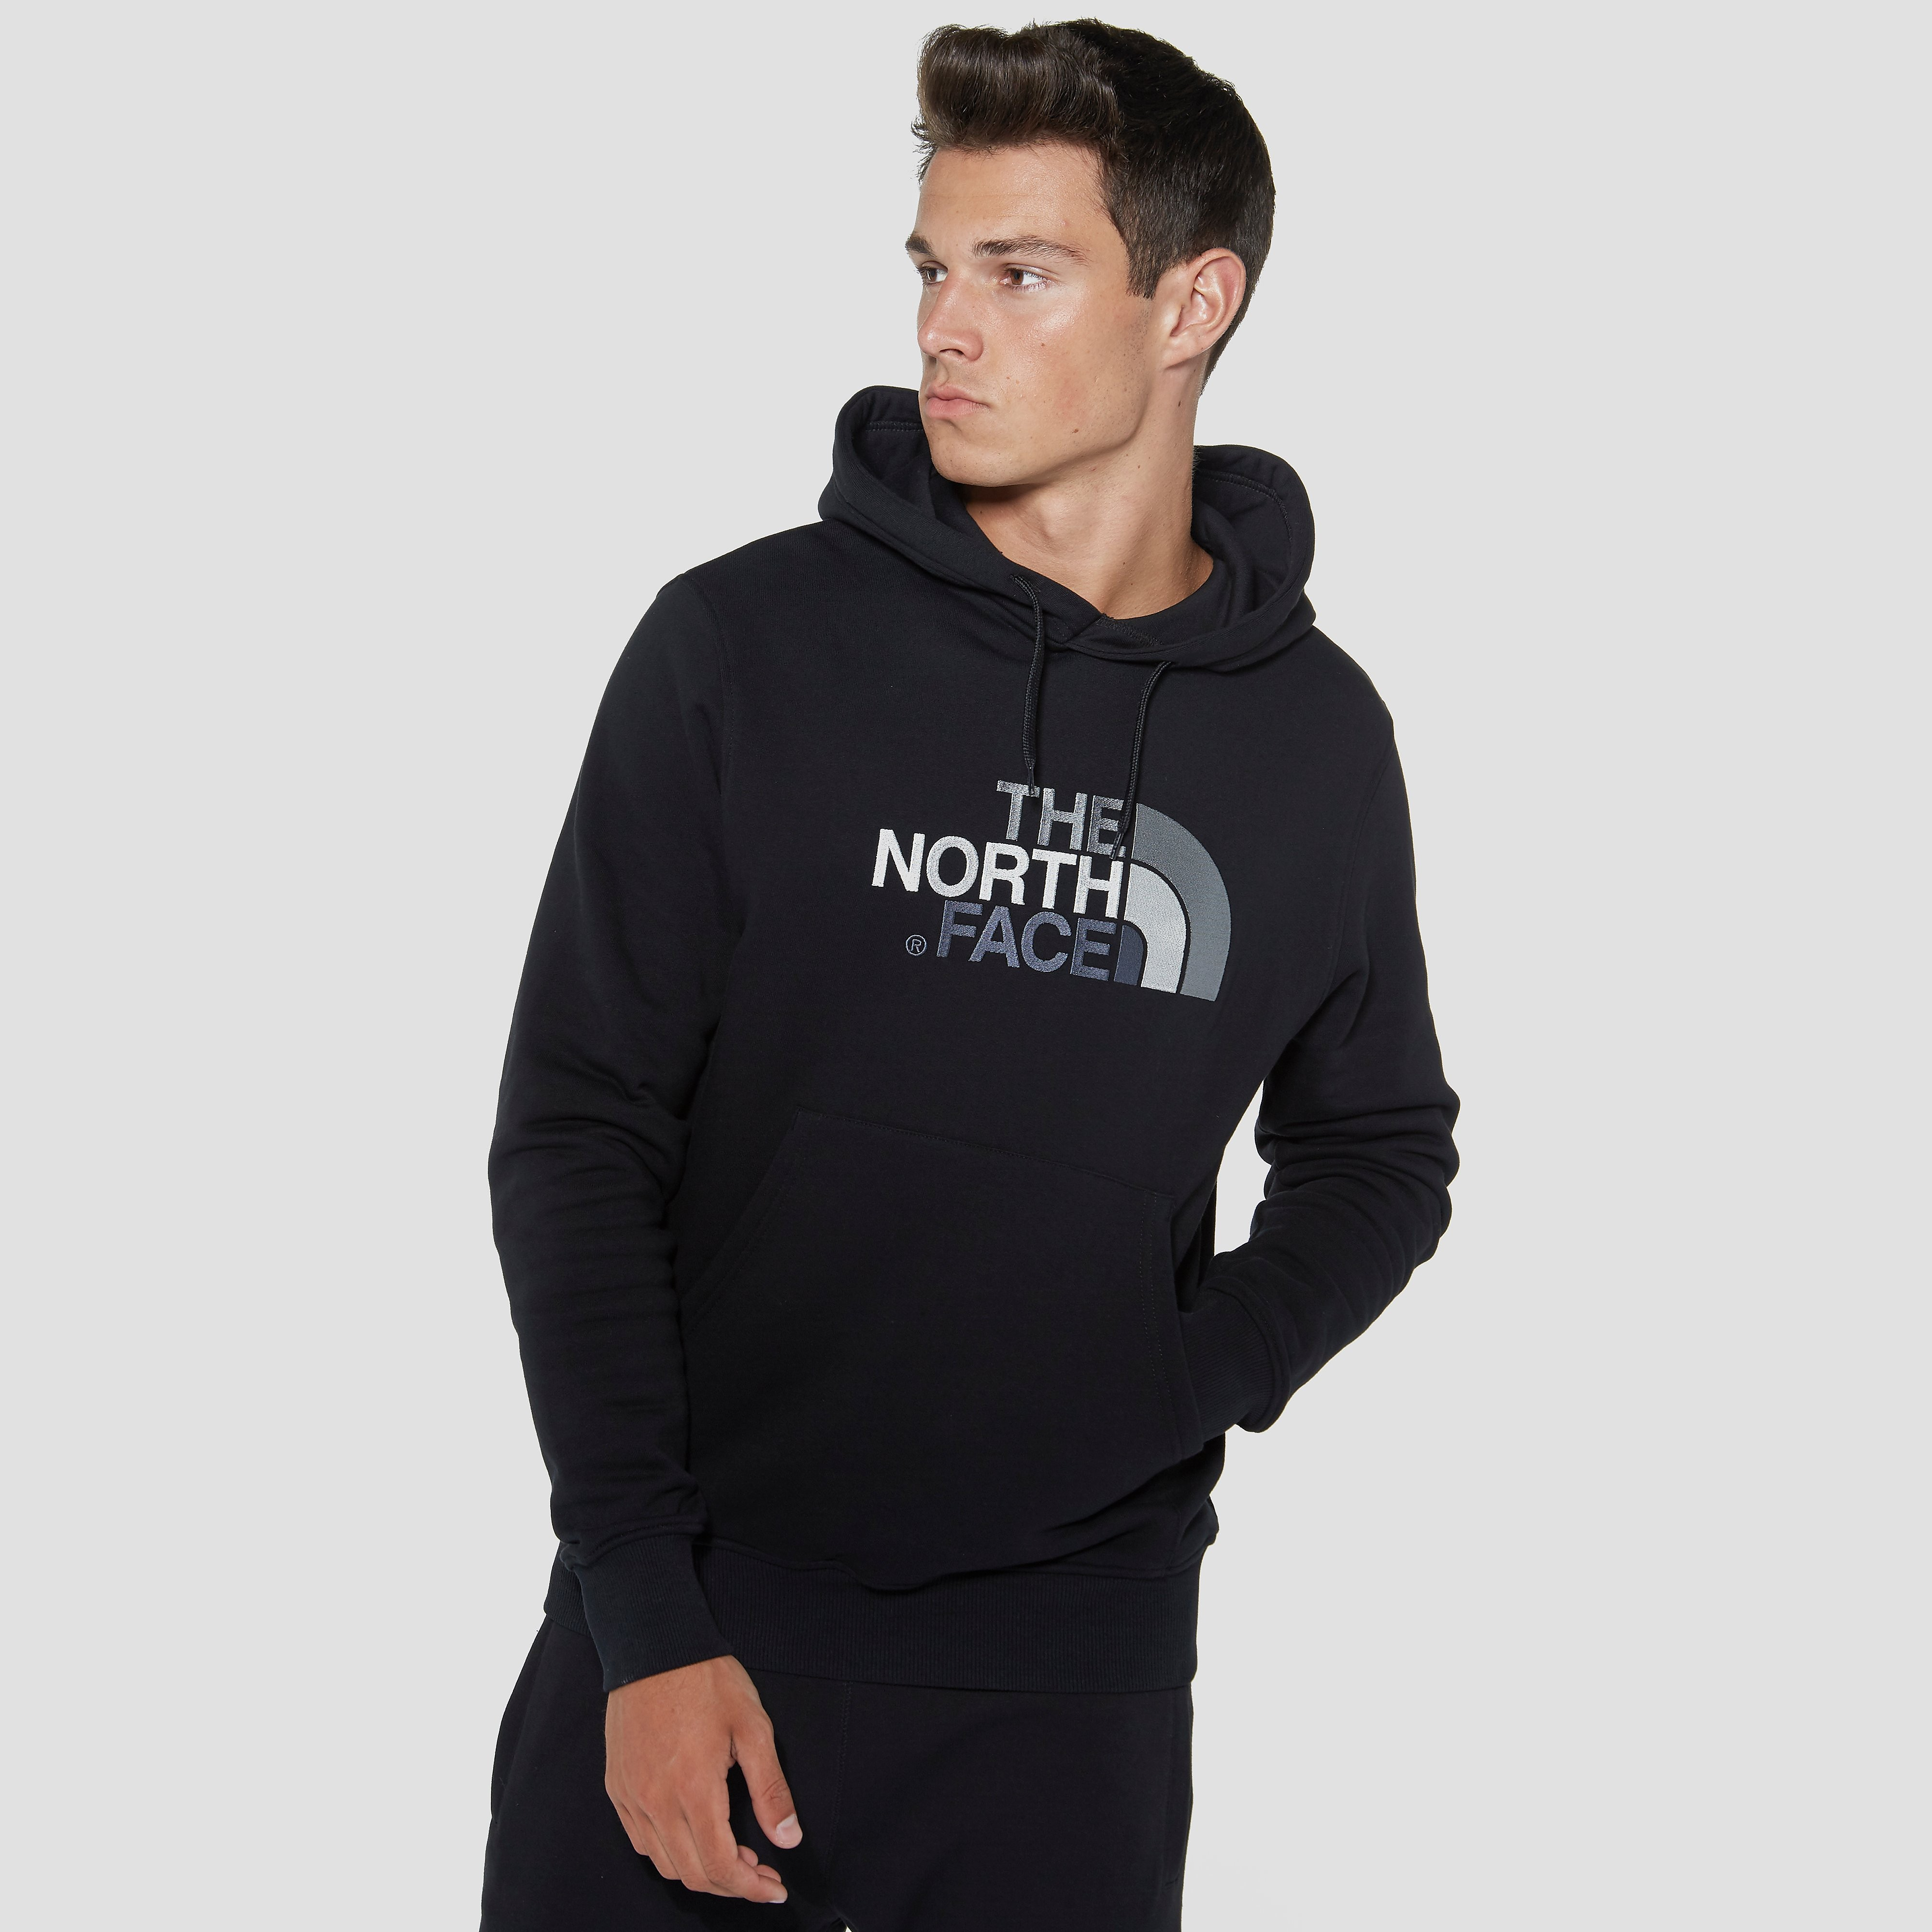 THE NORTH FACE DREW PEAK TRUI HEREN